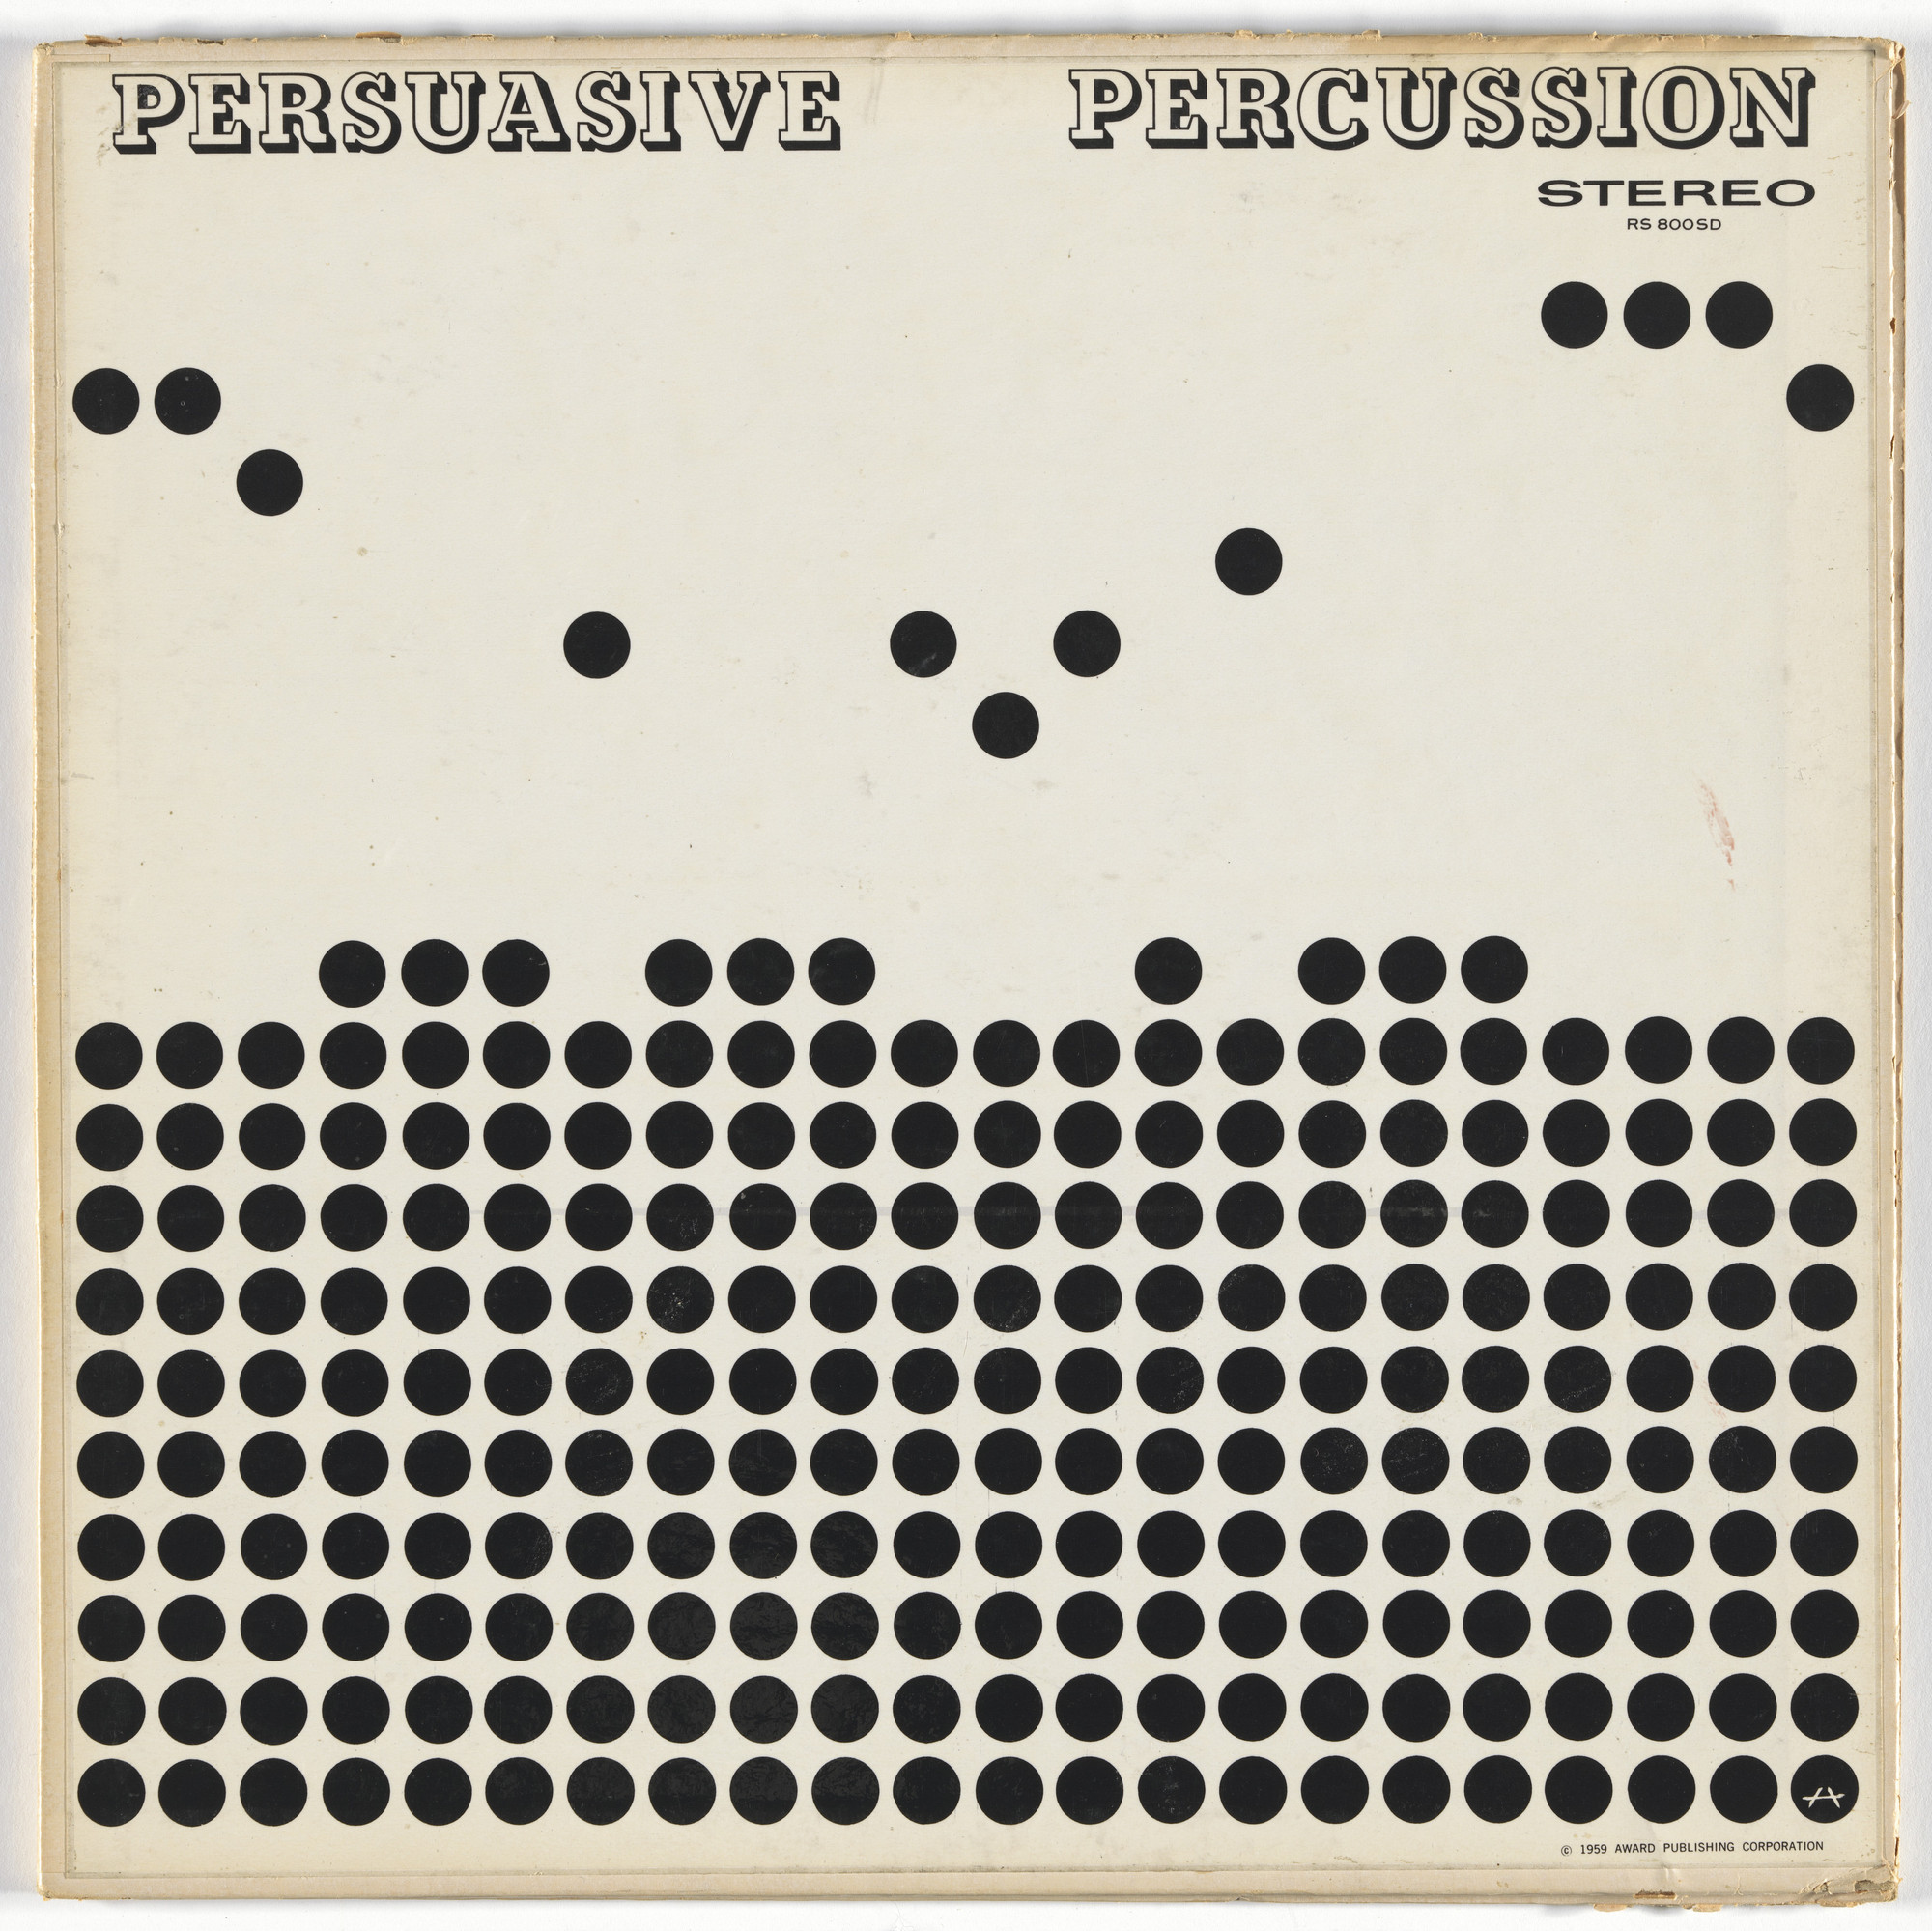 Josef Albers, Charles E. Murphy, Command Records. Album cover for Terry Snyder and the All Stars, Persuasive Percussion. 1959